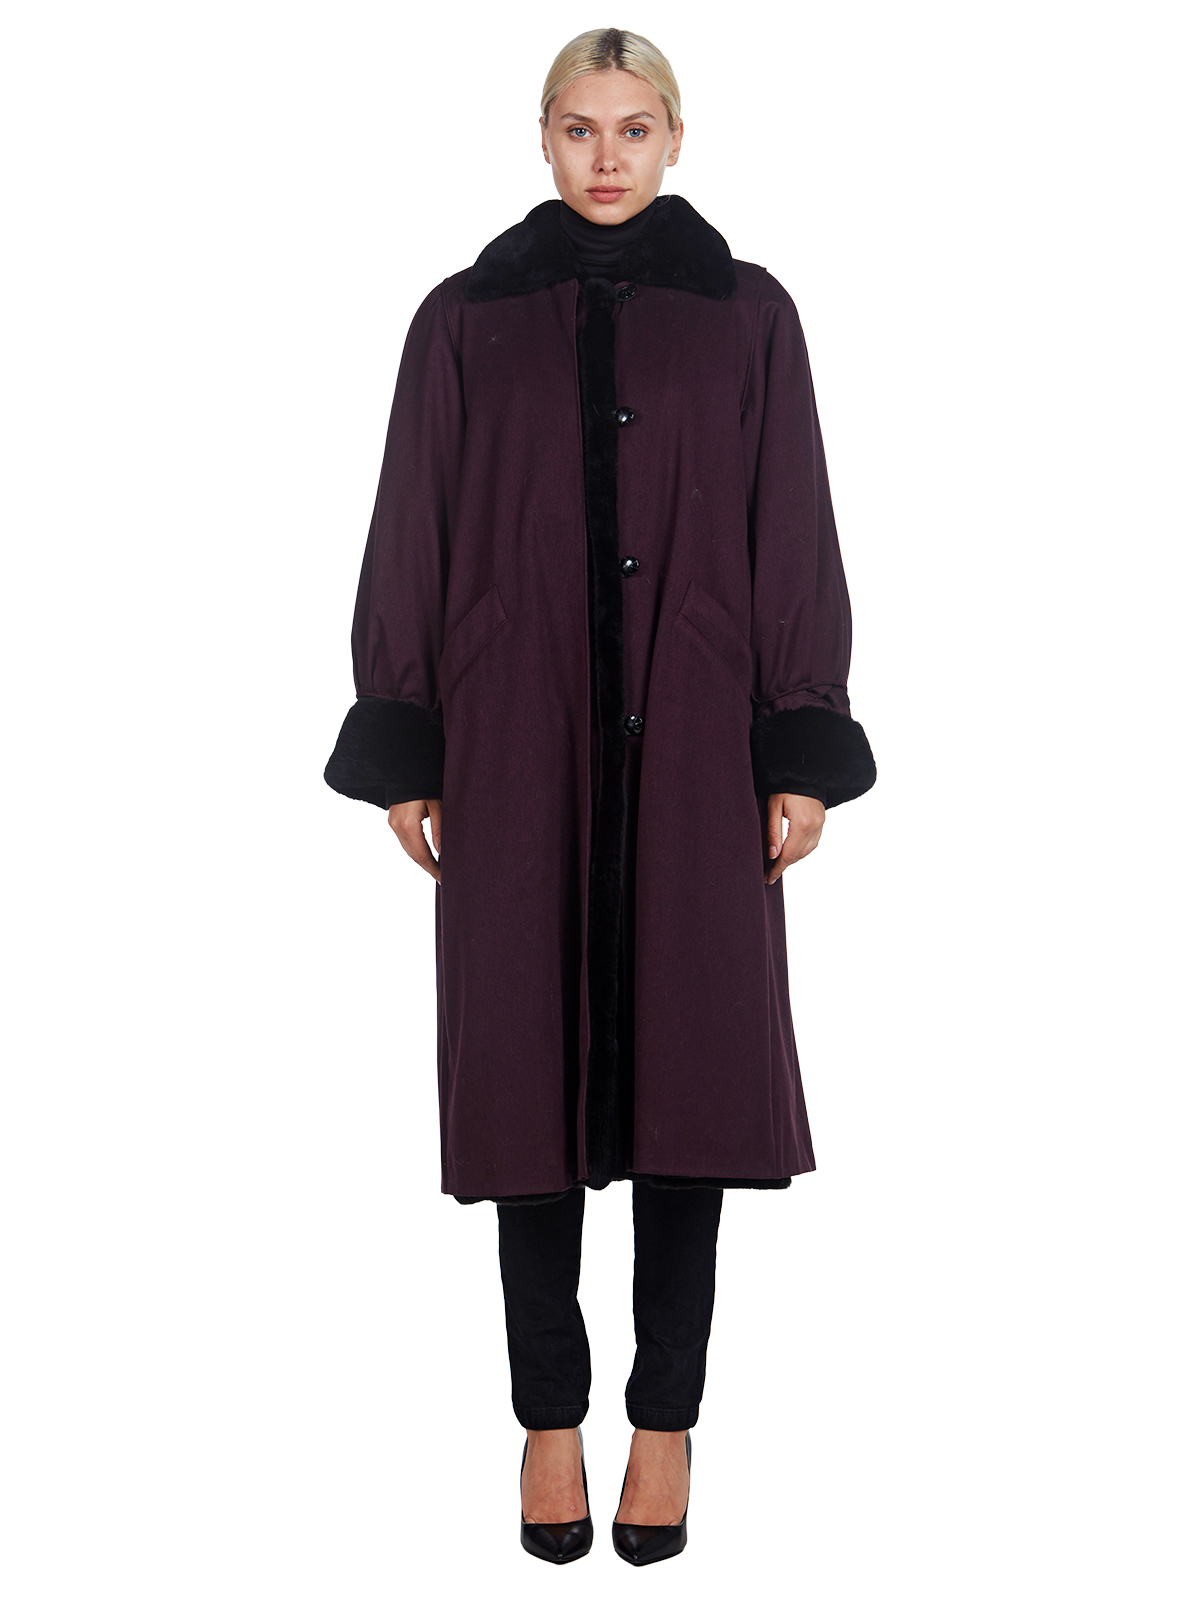 Woman's Reversible Burgundy Fabric with Sheared Nutria Coat